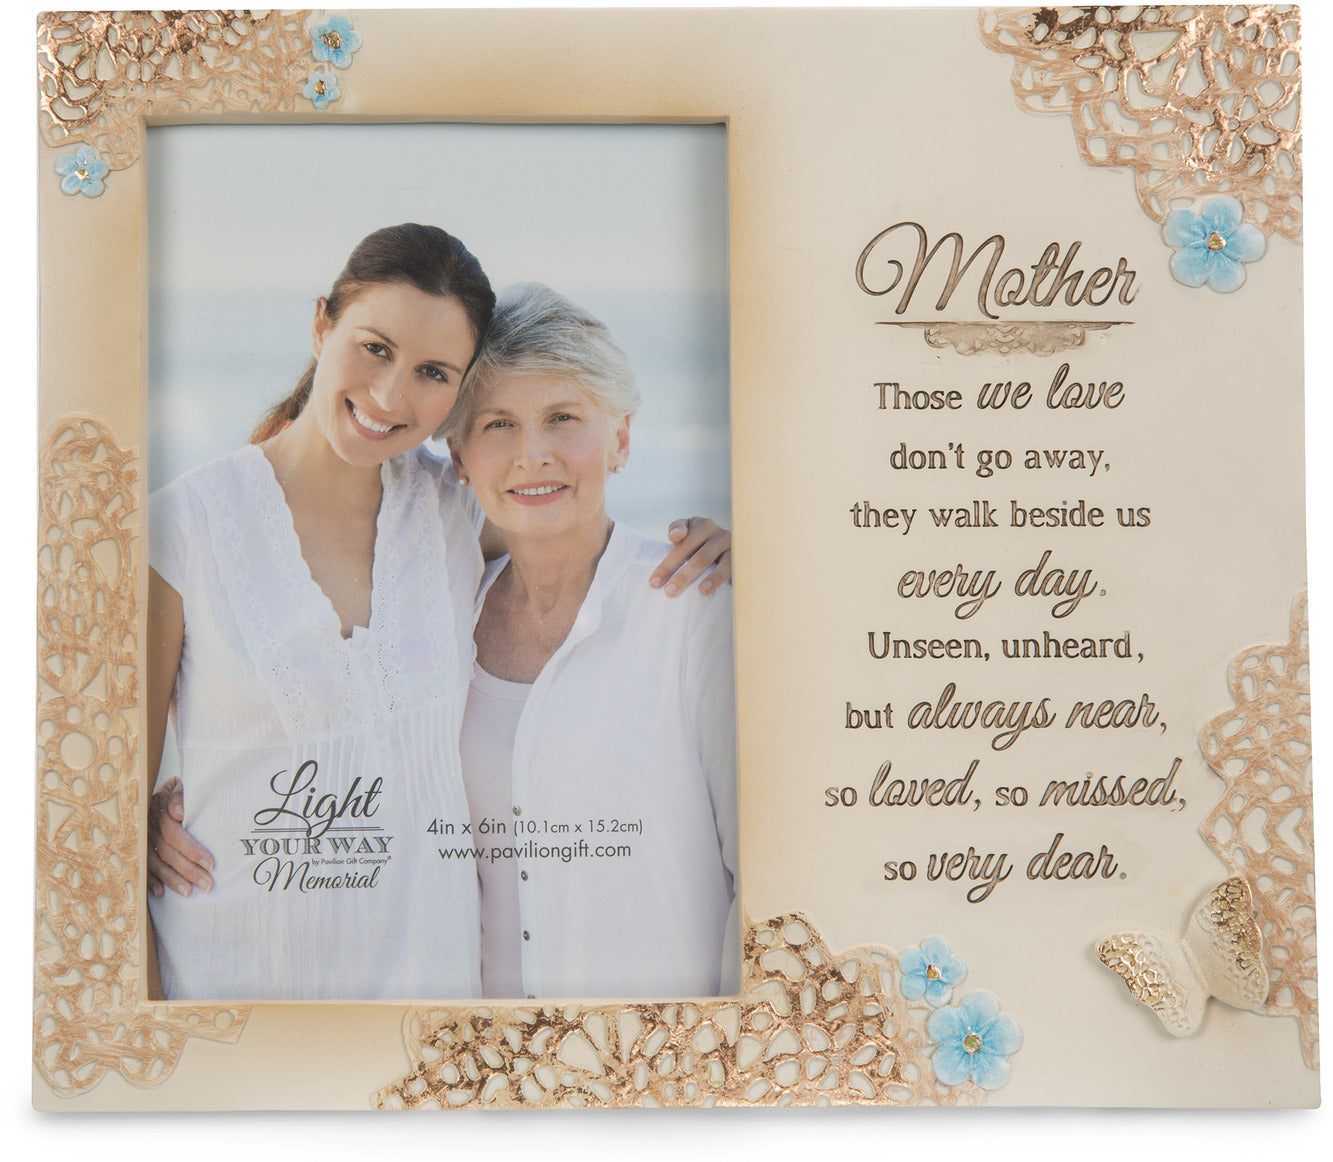 Light Your Way - Mother memorial frame